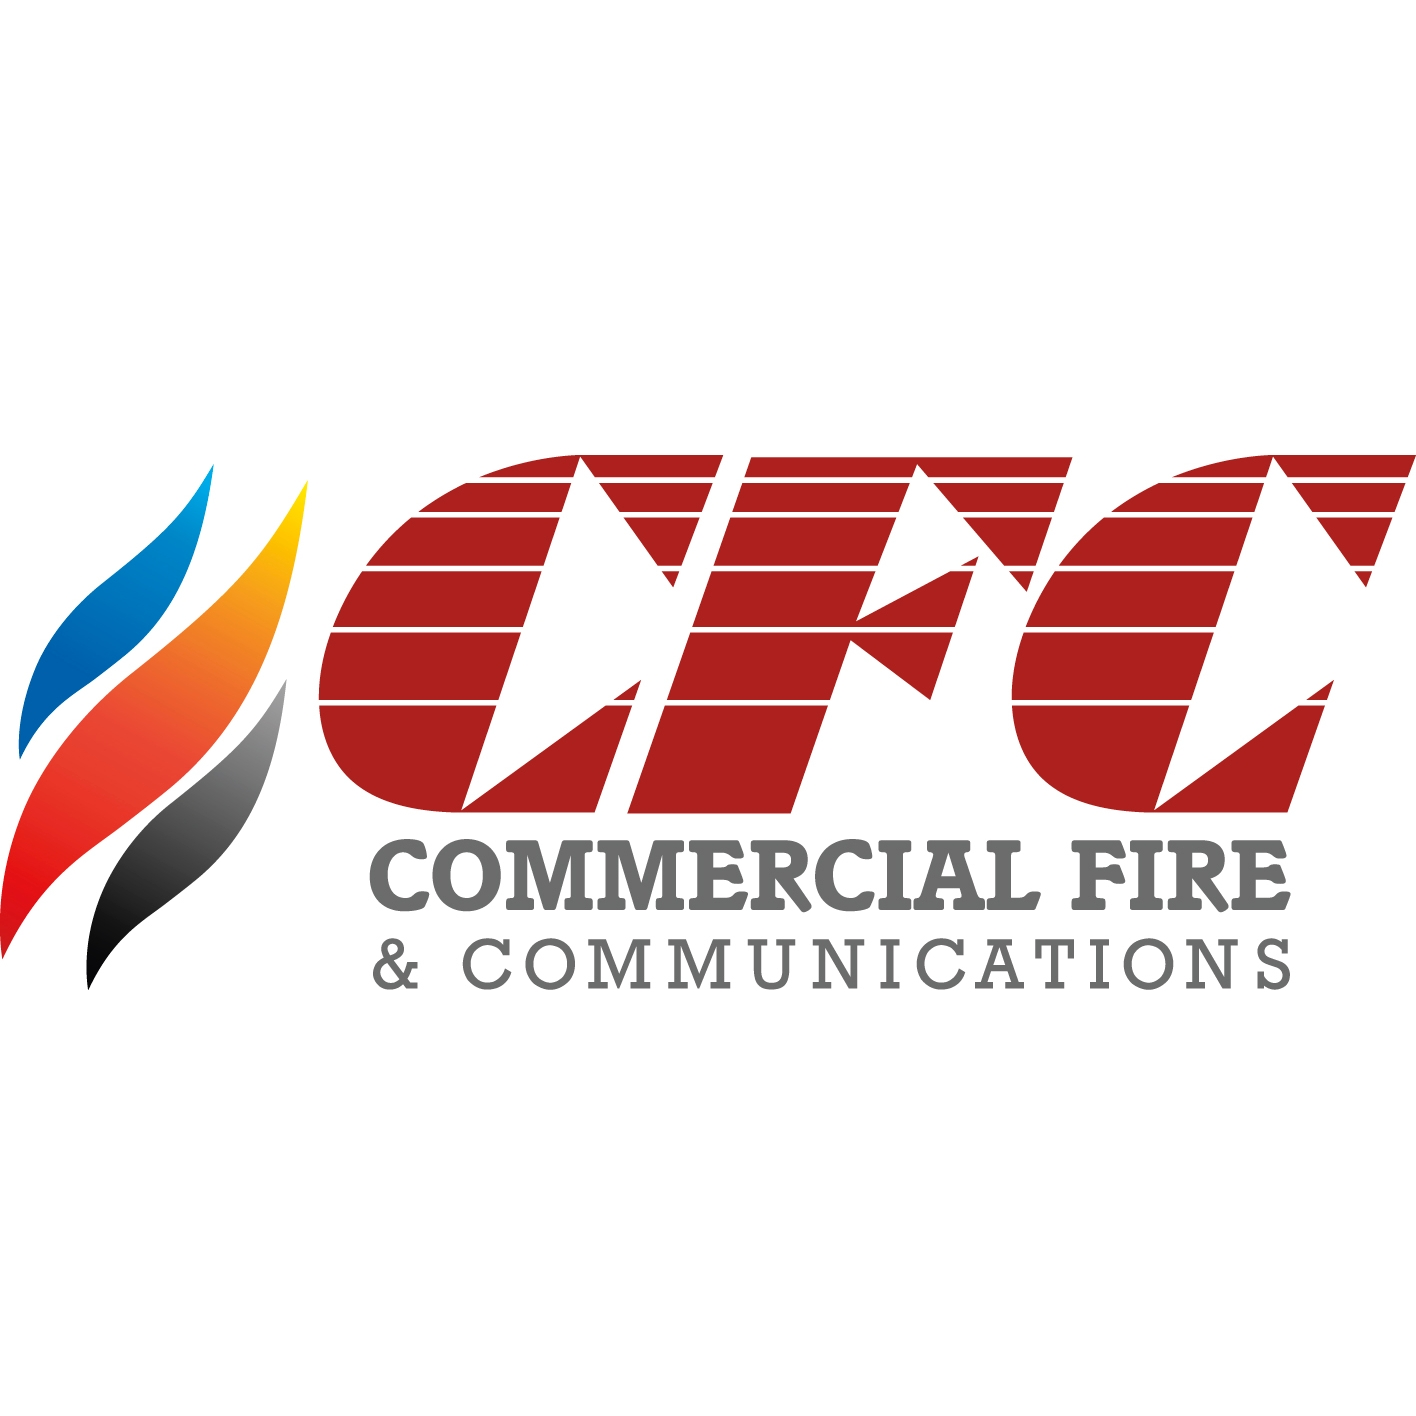 Commercial Fire & Communications